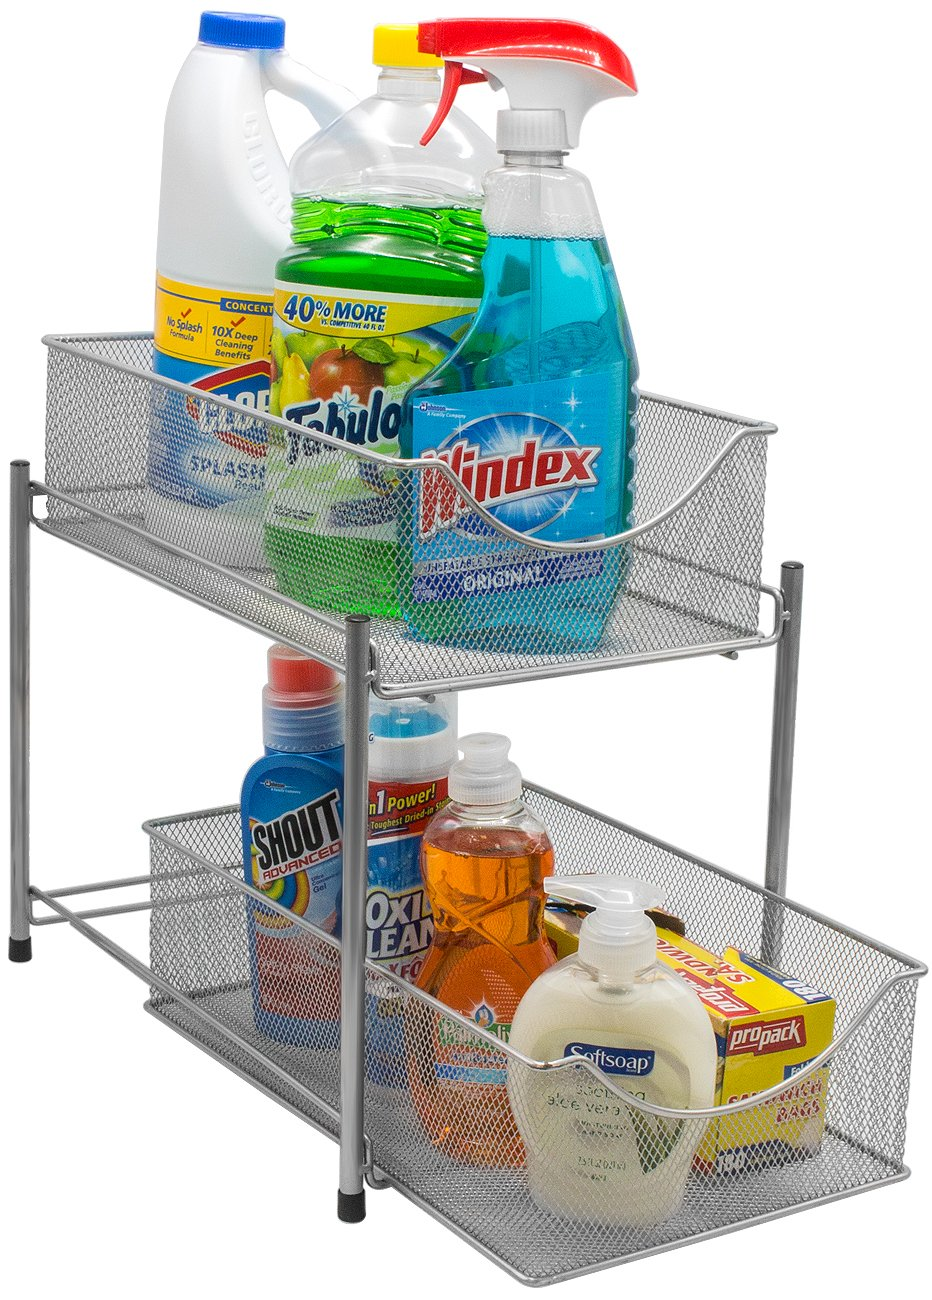 Open-Top Drawers - Drawers with an open top serve a different purpose than those without. If you're storing tall product bottles or cleaning products, opt for a lidless top so they can fit! Use the bottom drawer for smaller things and enjoy the ease of pulling the drawer in and out.